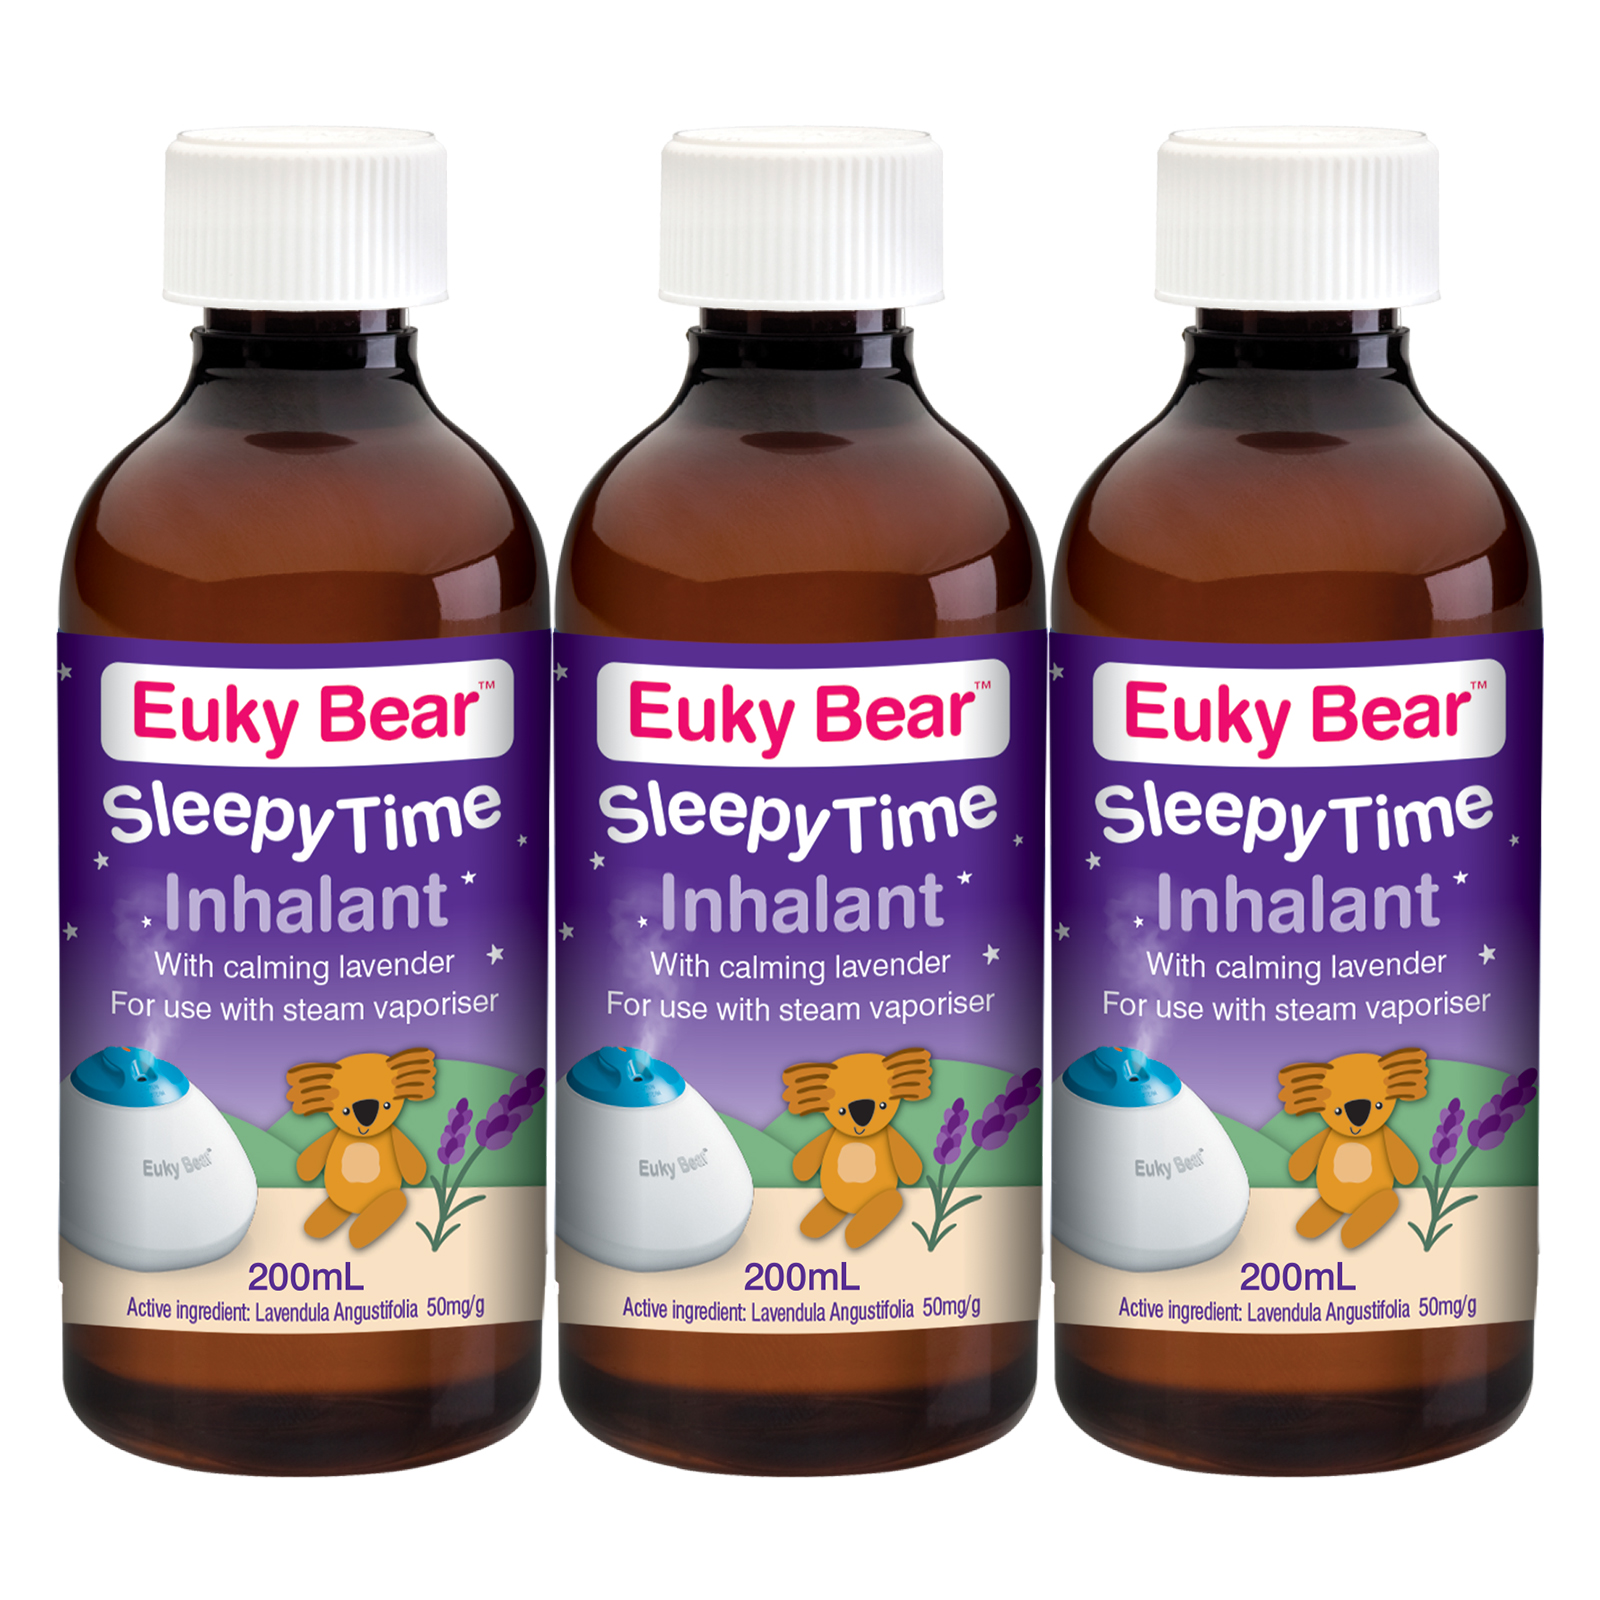 baby-fairEuky Bear Sleepy Time Inhalant 200ml (Bundle of 3)